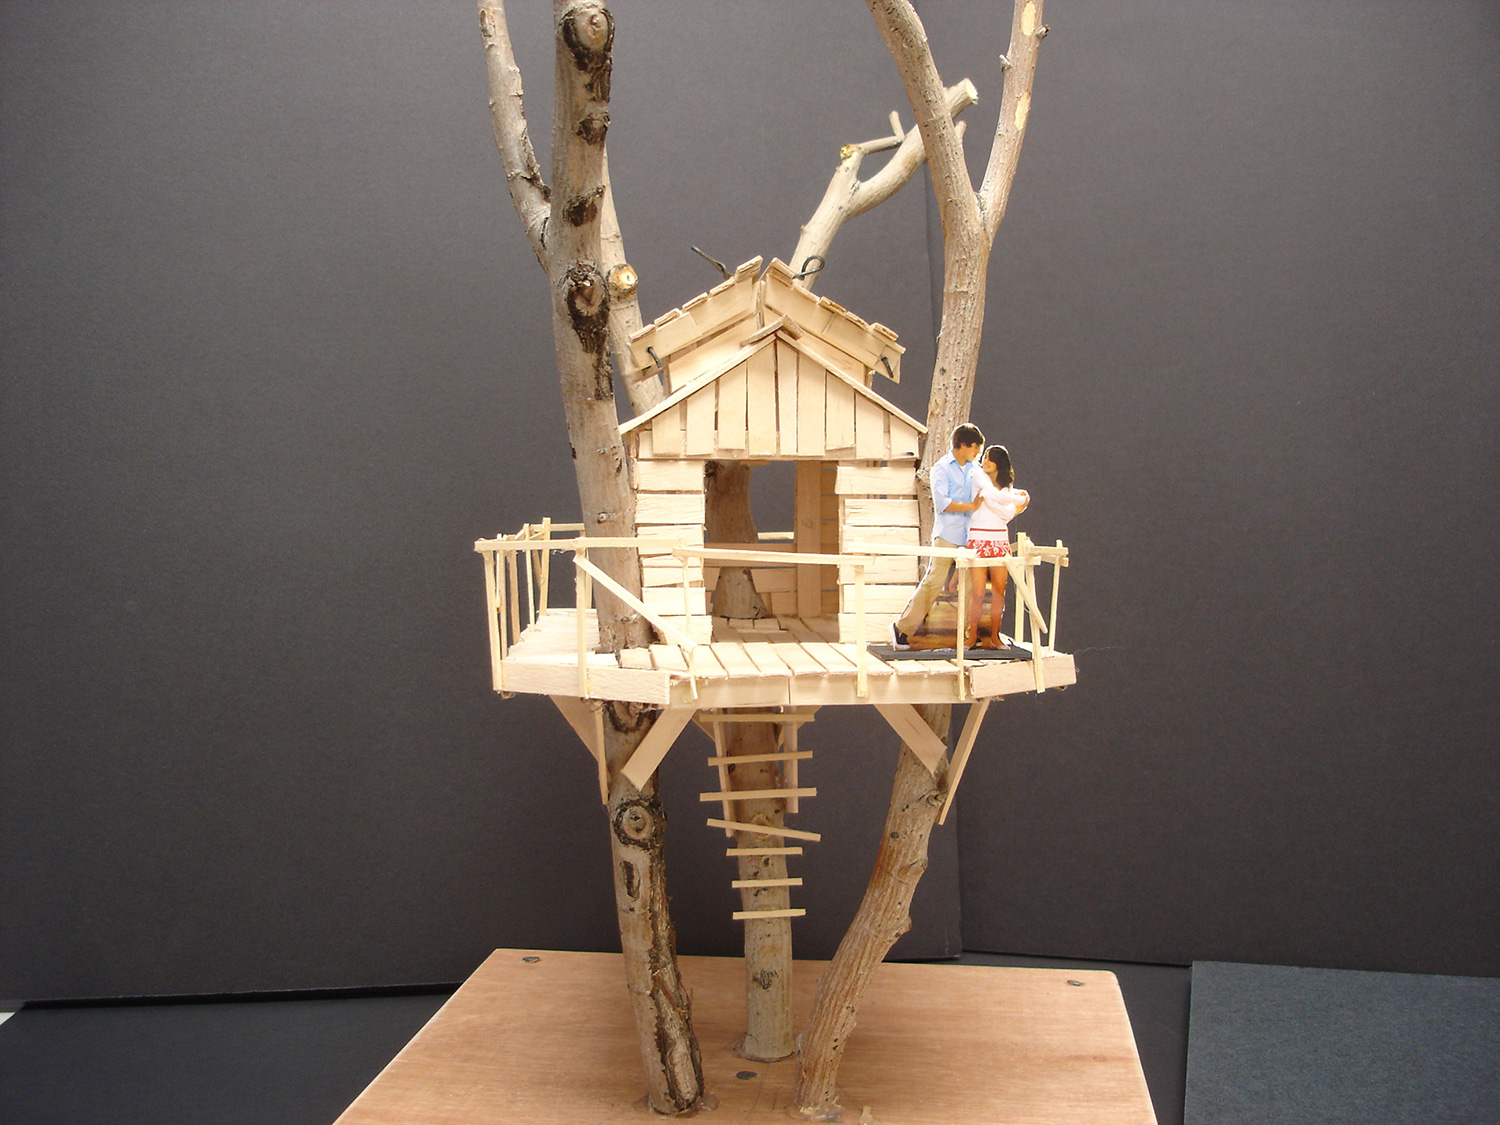 """A simple model I built to help construction determine the pitch and spread of the three imported tree trunks and how they would intersect with the treehouse from """"High School Musical 3"""" (2008)."""